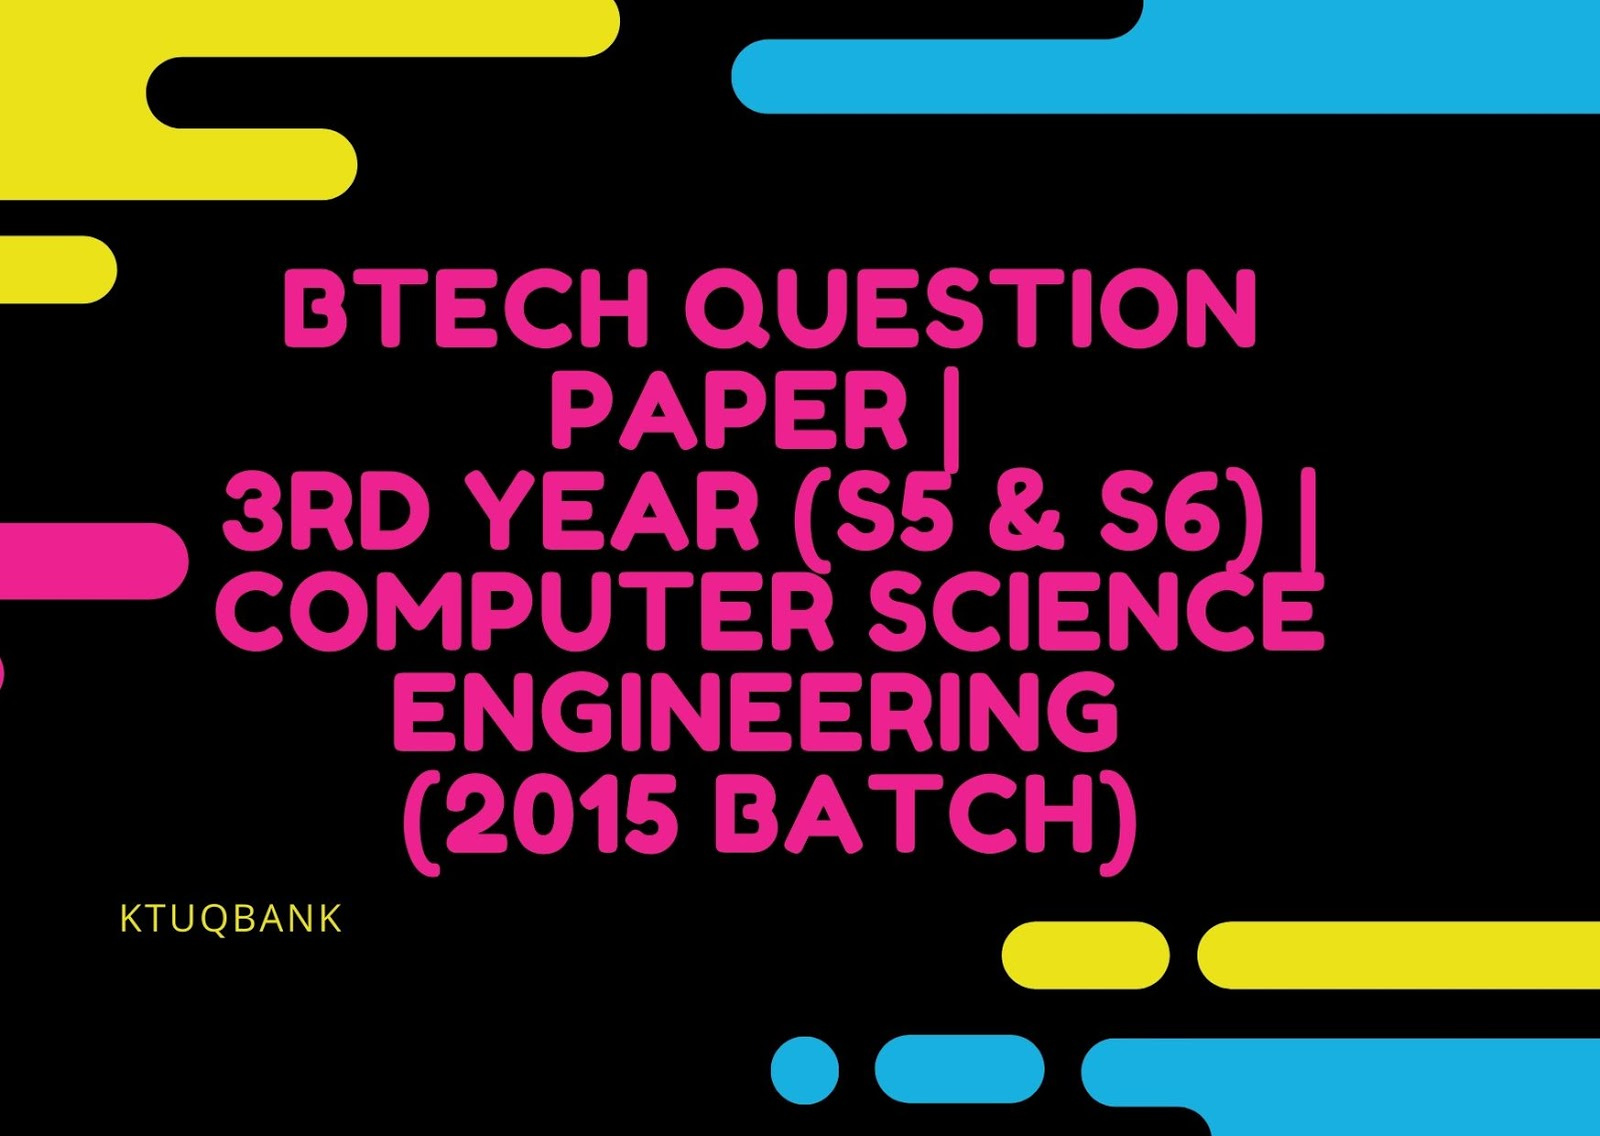 BTech Question Paper | 3rd Year (S5 & S6) | Computer Science Engineering (2015 Batch)